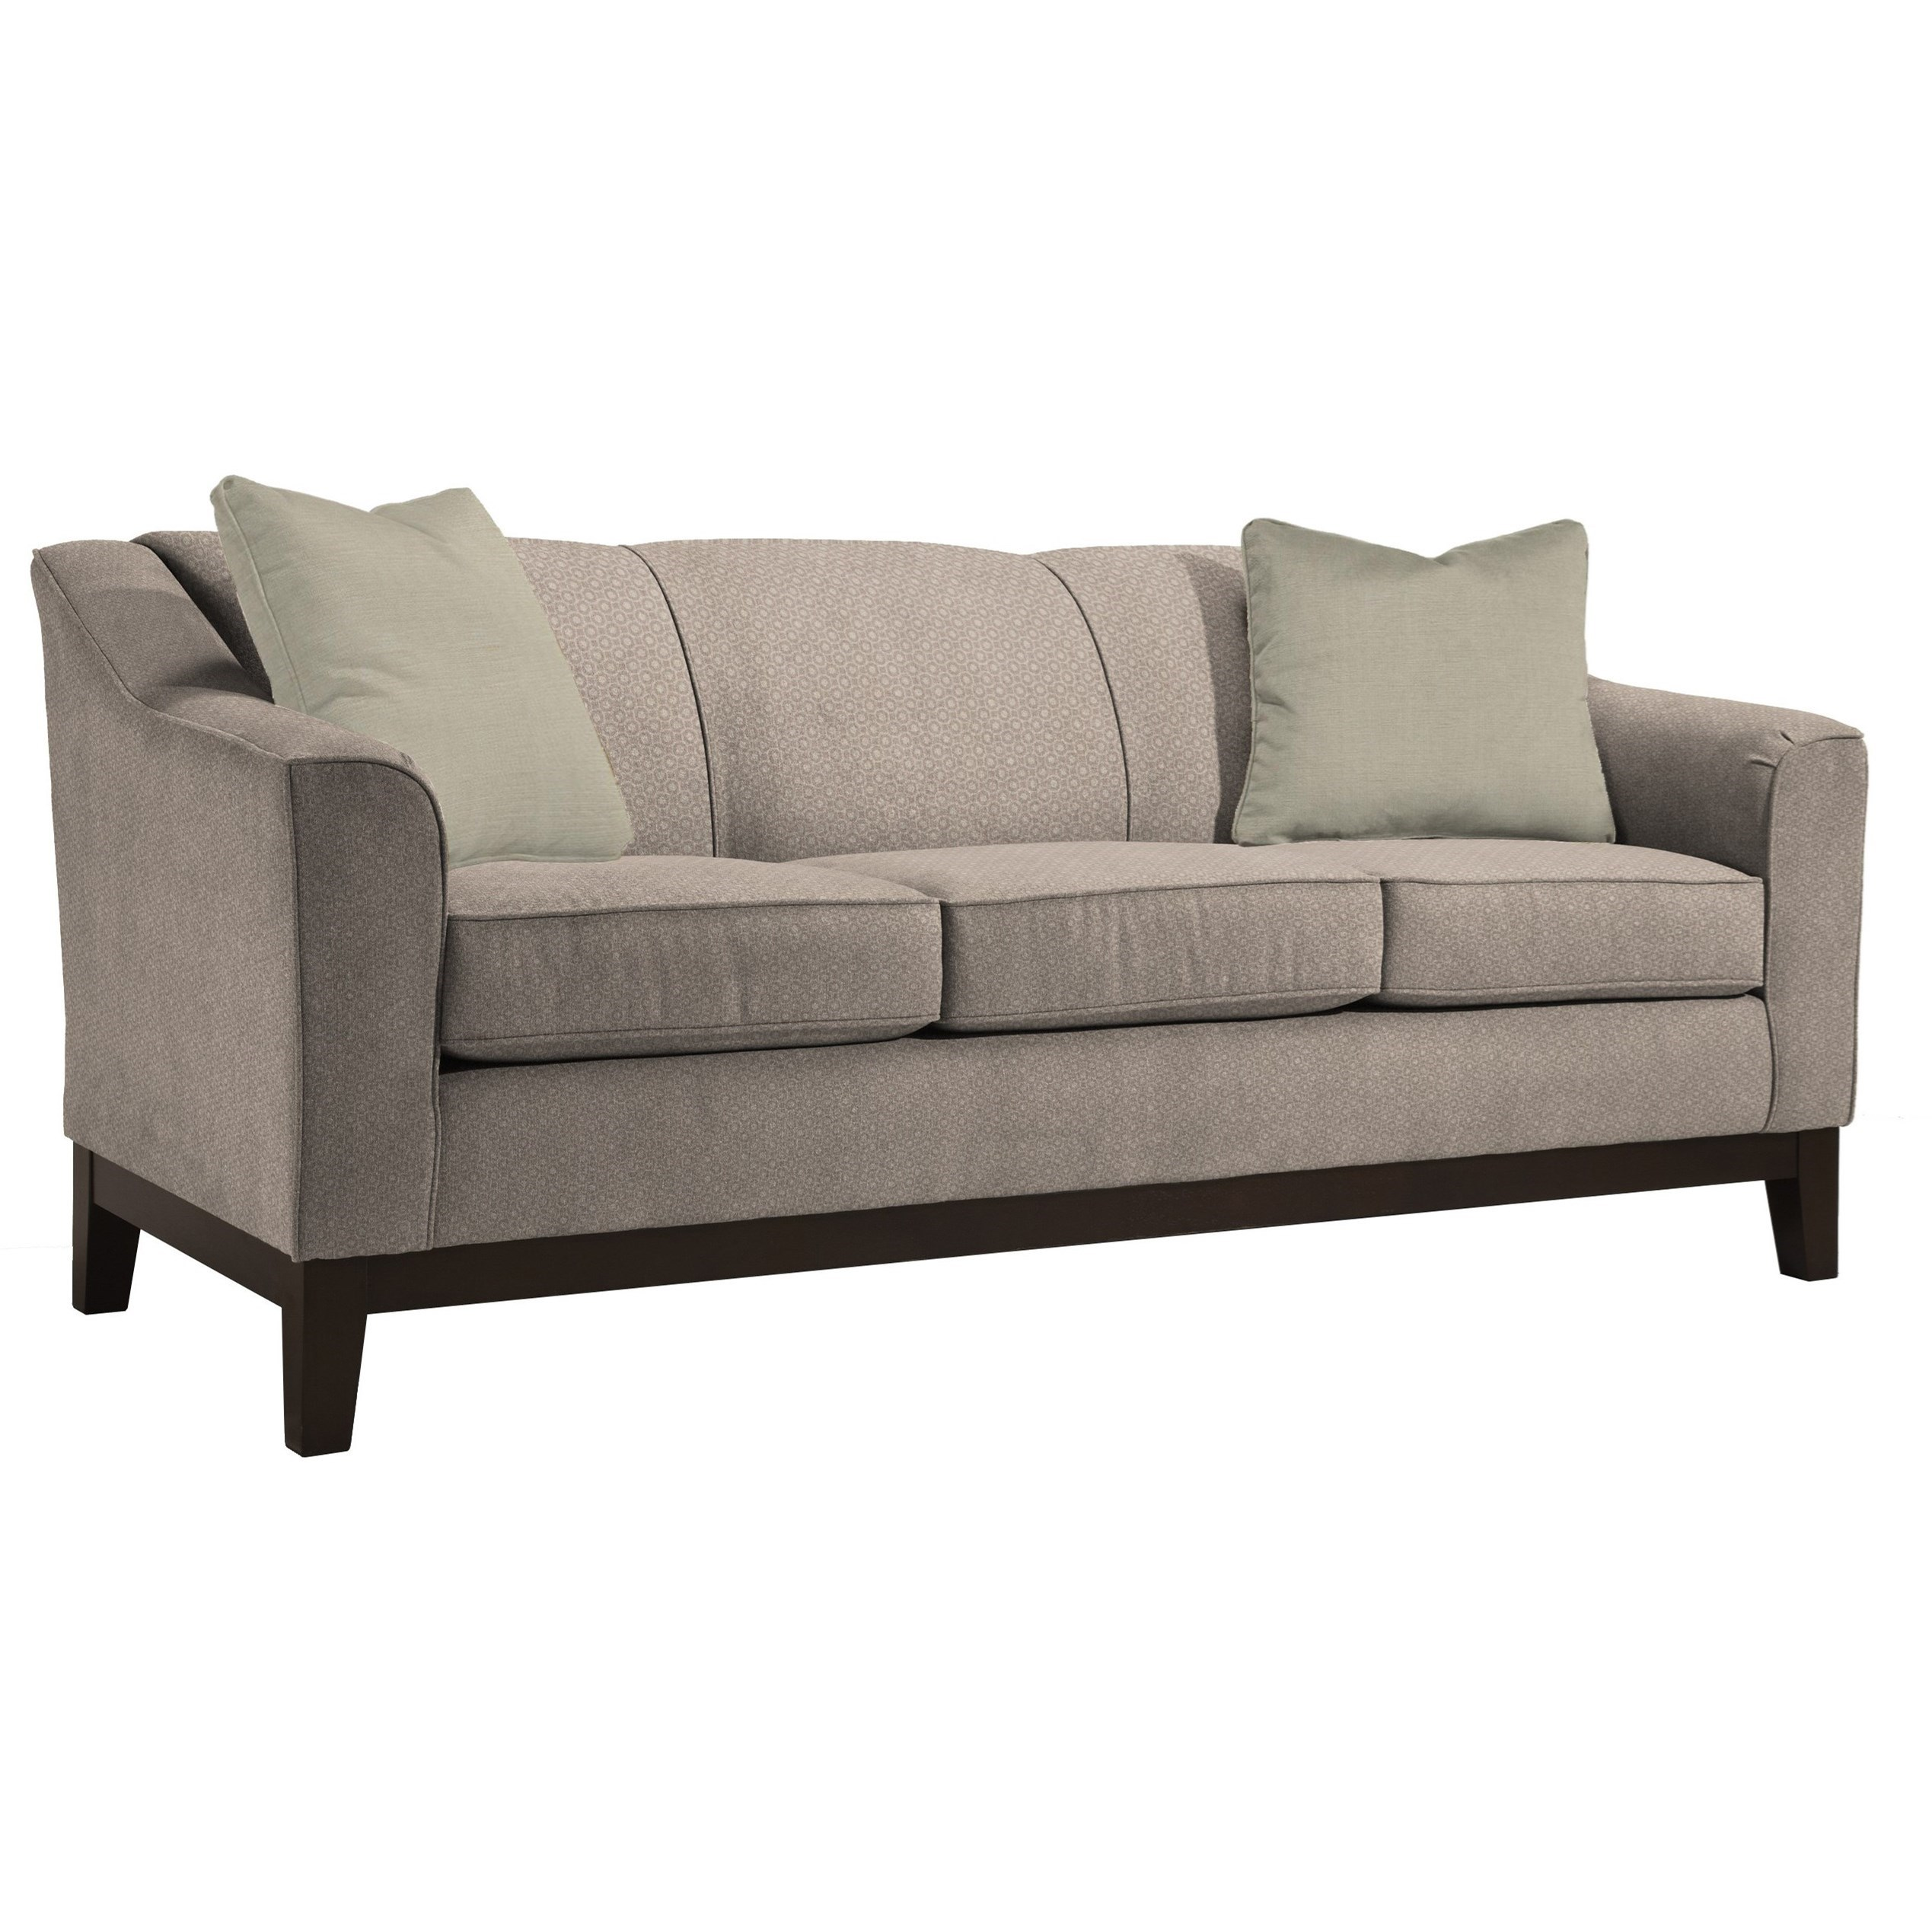 Best Home Furnishings Emeline Customizable Sofa - Item Number: 206338137-28718